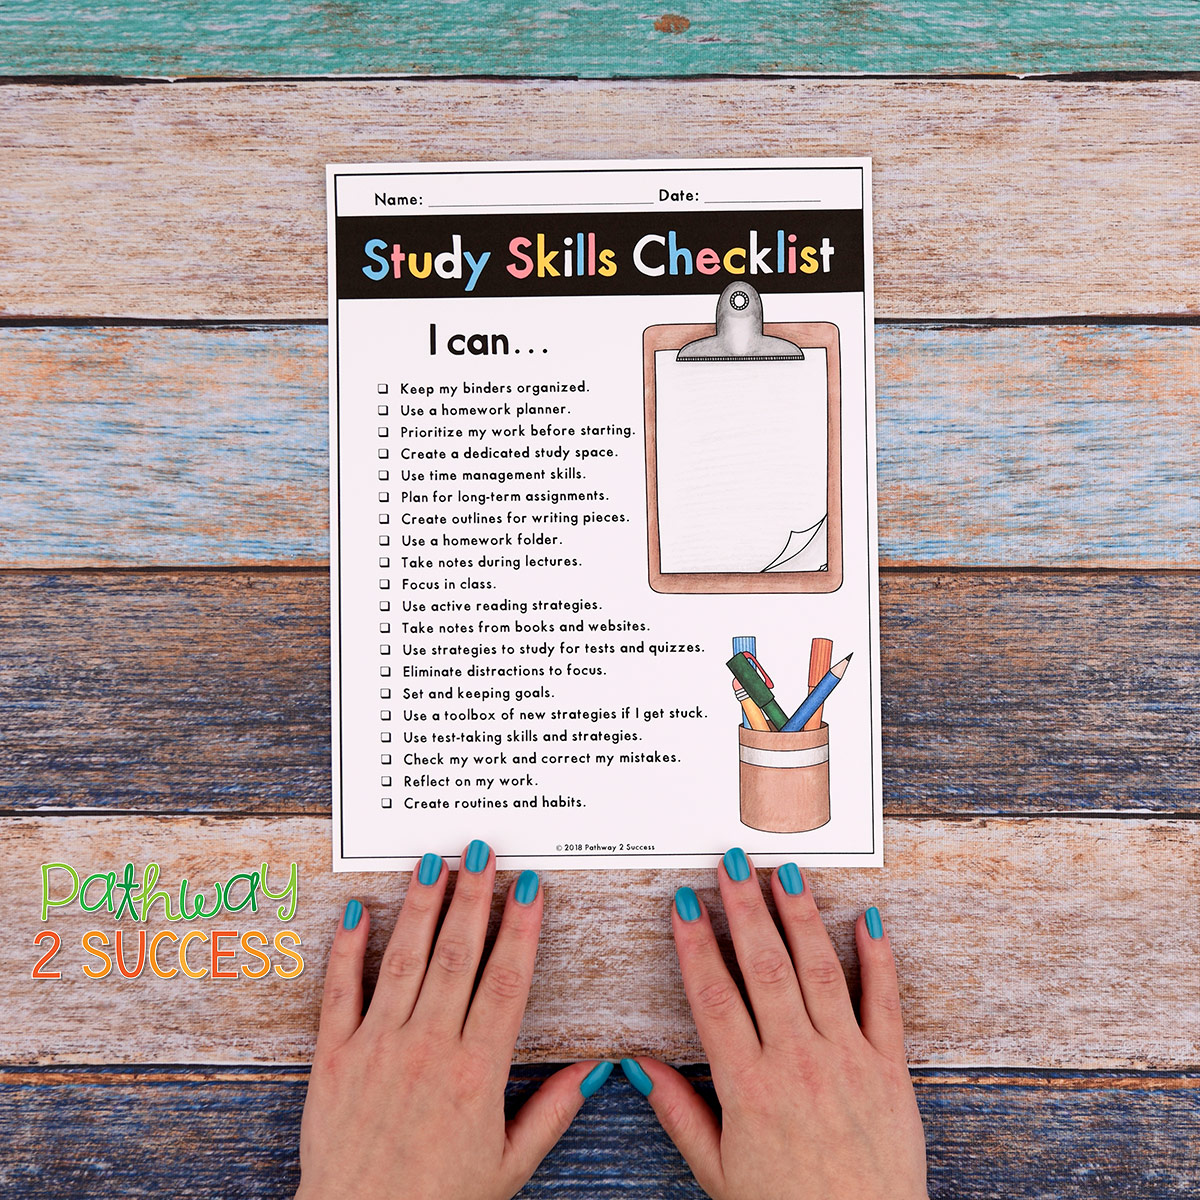 20+ strategies, ideas, and some free resources you can use to teach kids and young adults study strategies for academic success! Students at the middle and high school level need good study habits to do their best, including writing homework down, studying for tests, and staying organized. All teachers can give these a try! #studyskills #pathway2success